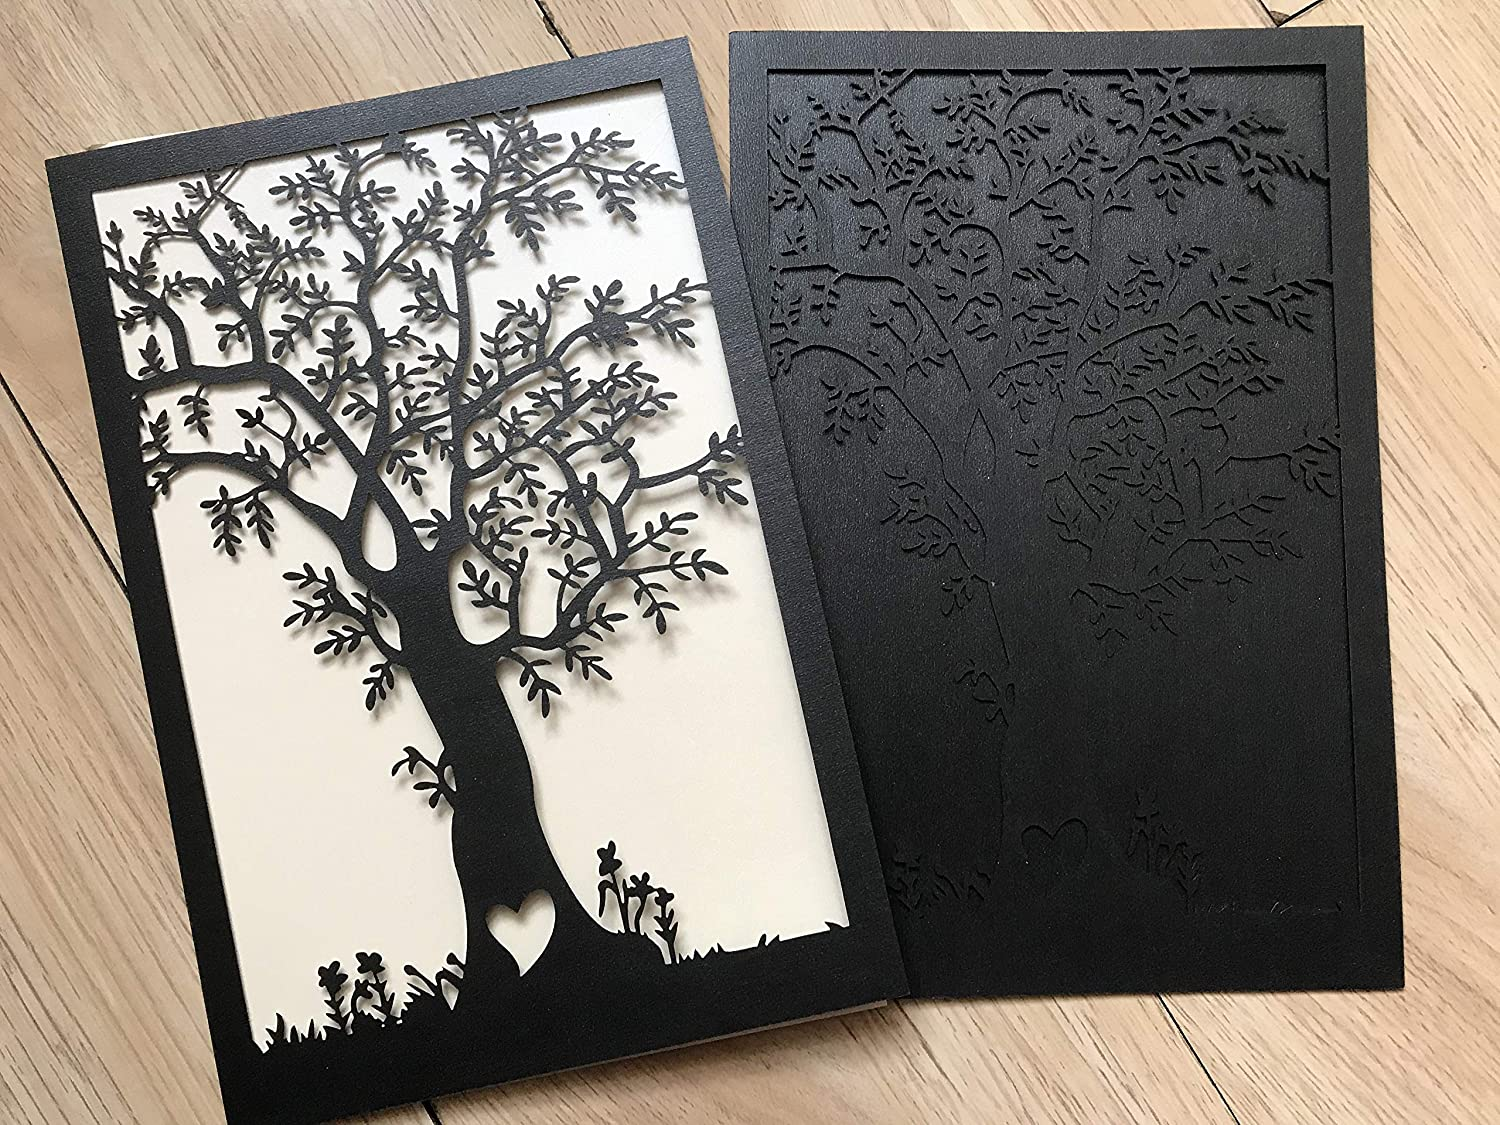 Amazon.com: customiz Laser Cut Wedding Invitations Cards,Tree Design Laser  Cut Invitation Cards,Wishing Well Card,Laser Cut Invitation Cards,Wedding  Invite Cards,Pearl Black 50pcs: Arts, Crafts & Sewing